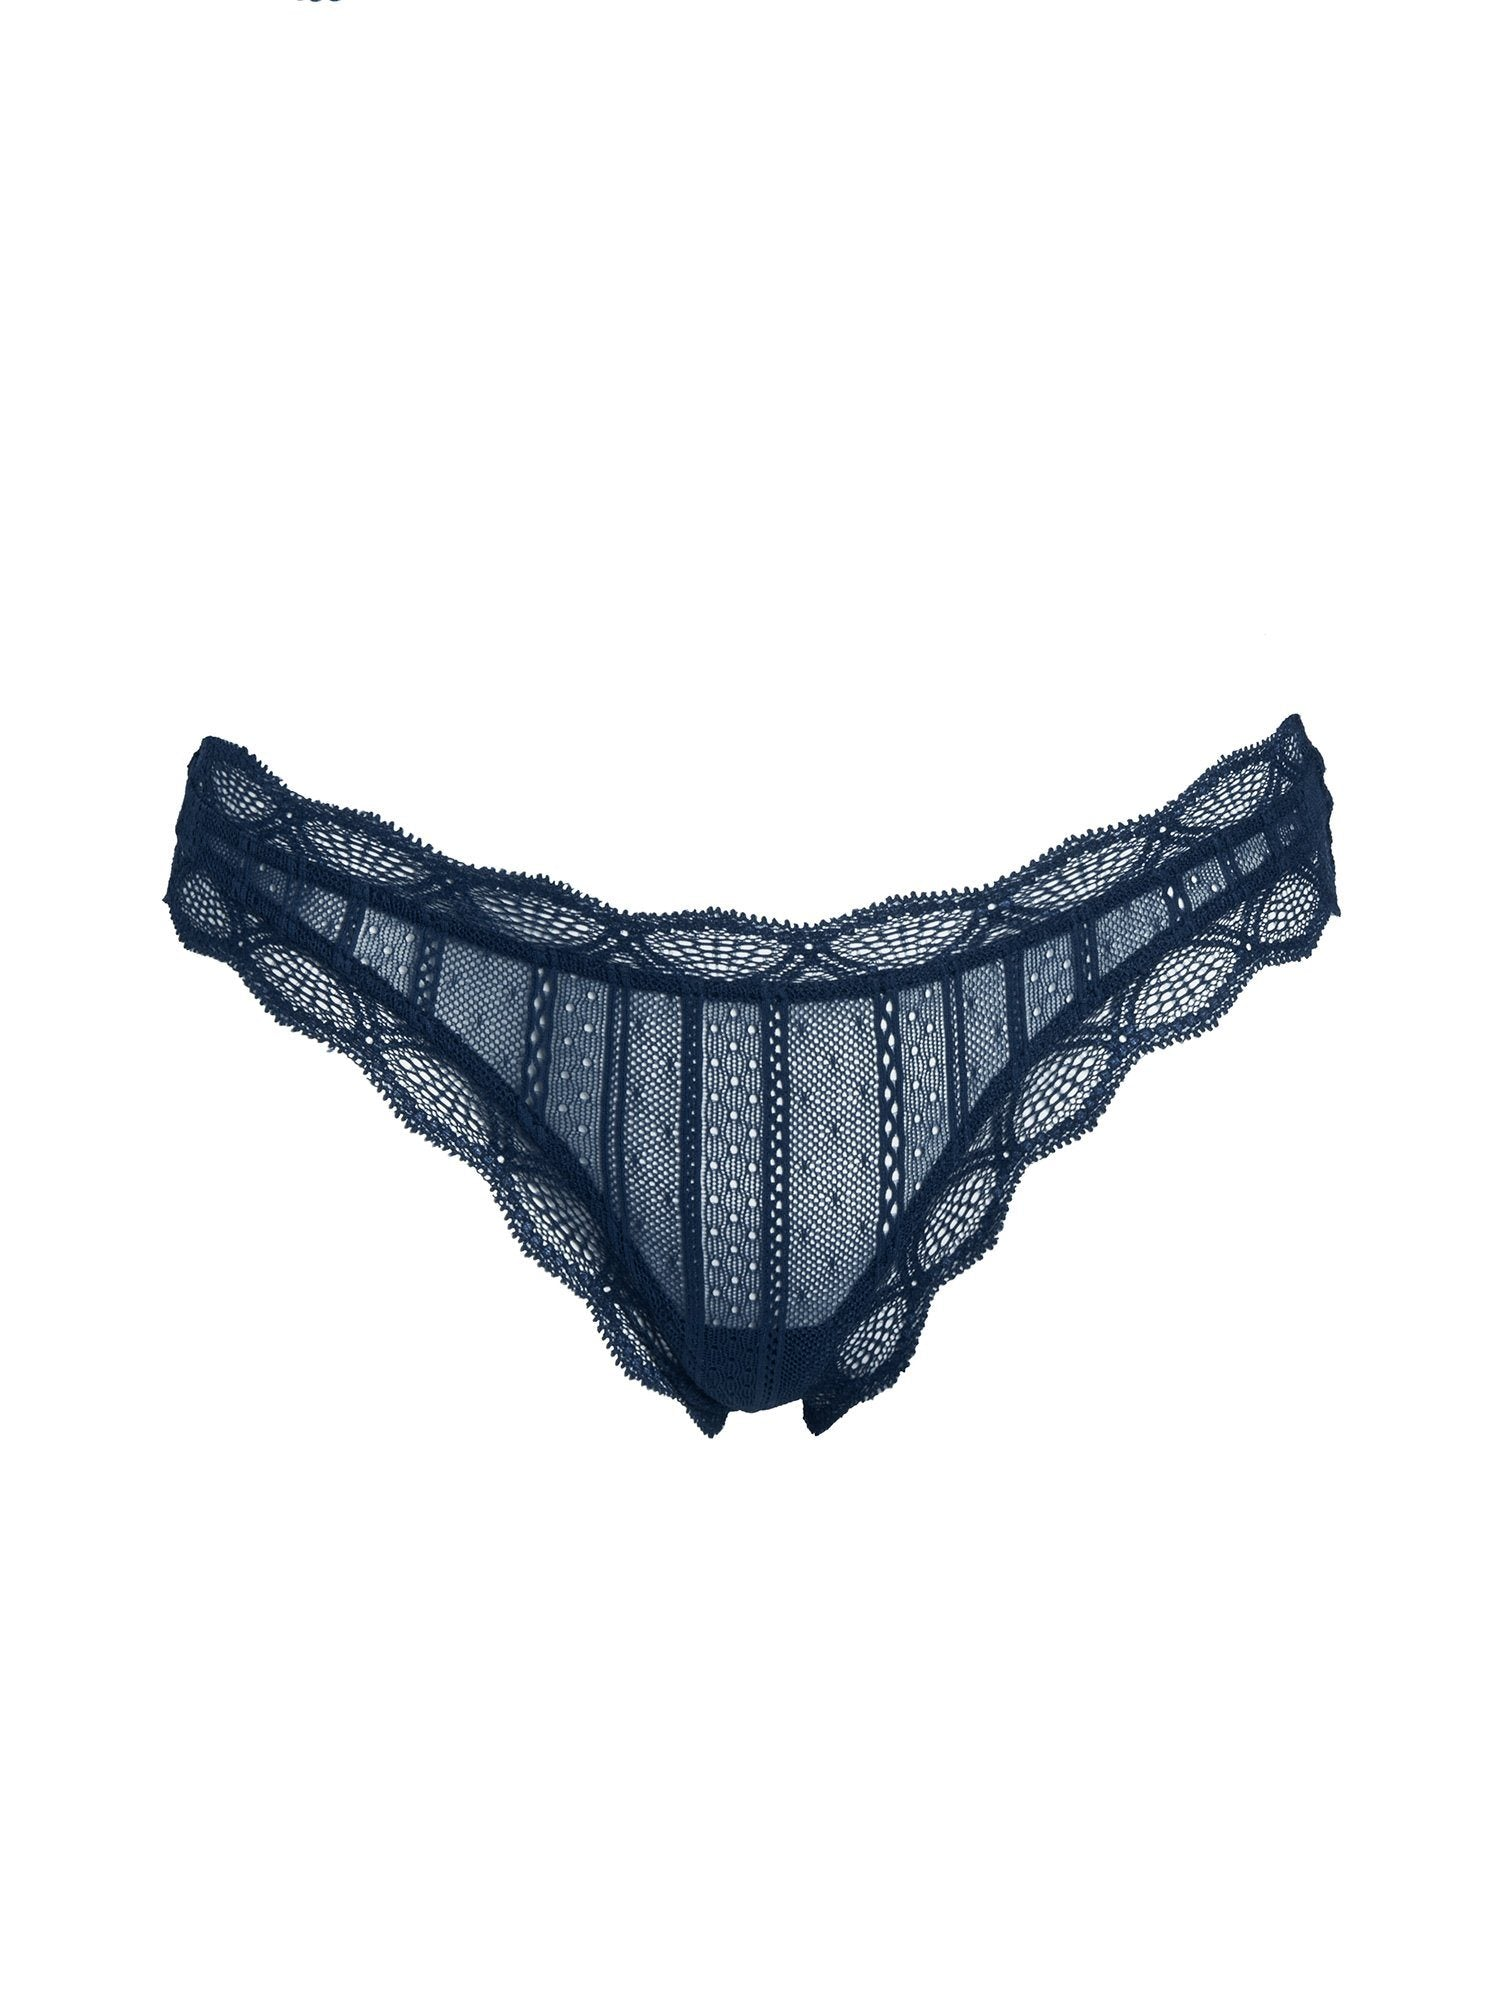 Fiona Thong Bras & Panties by Le Marché by NP